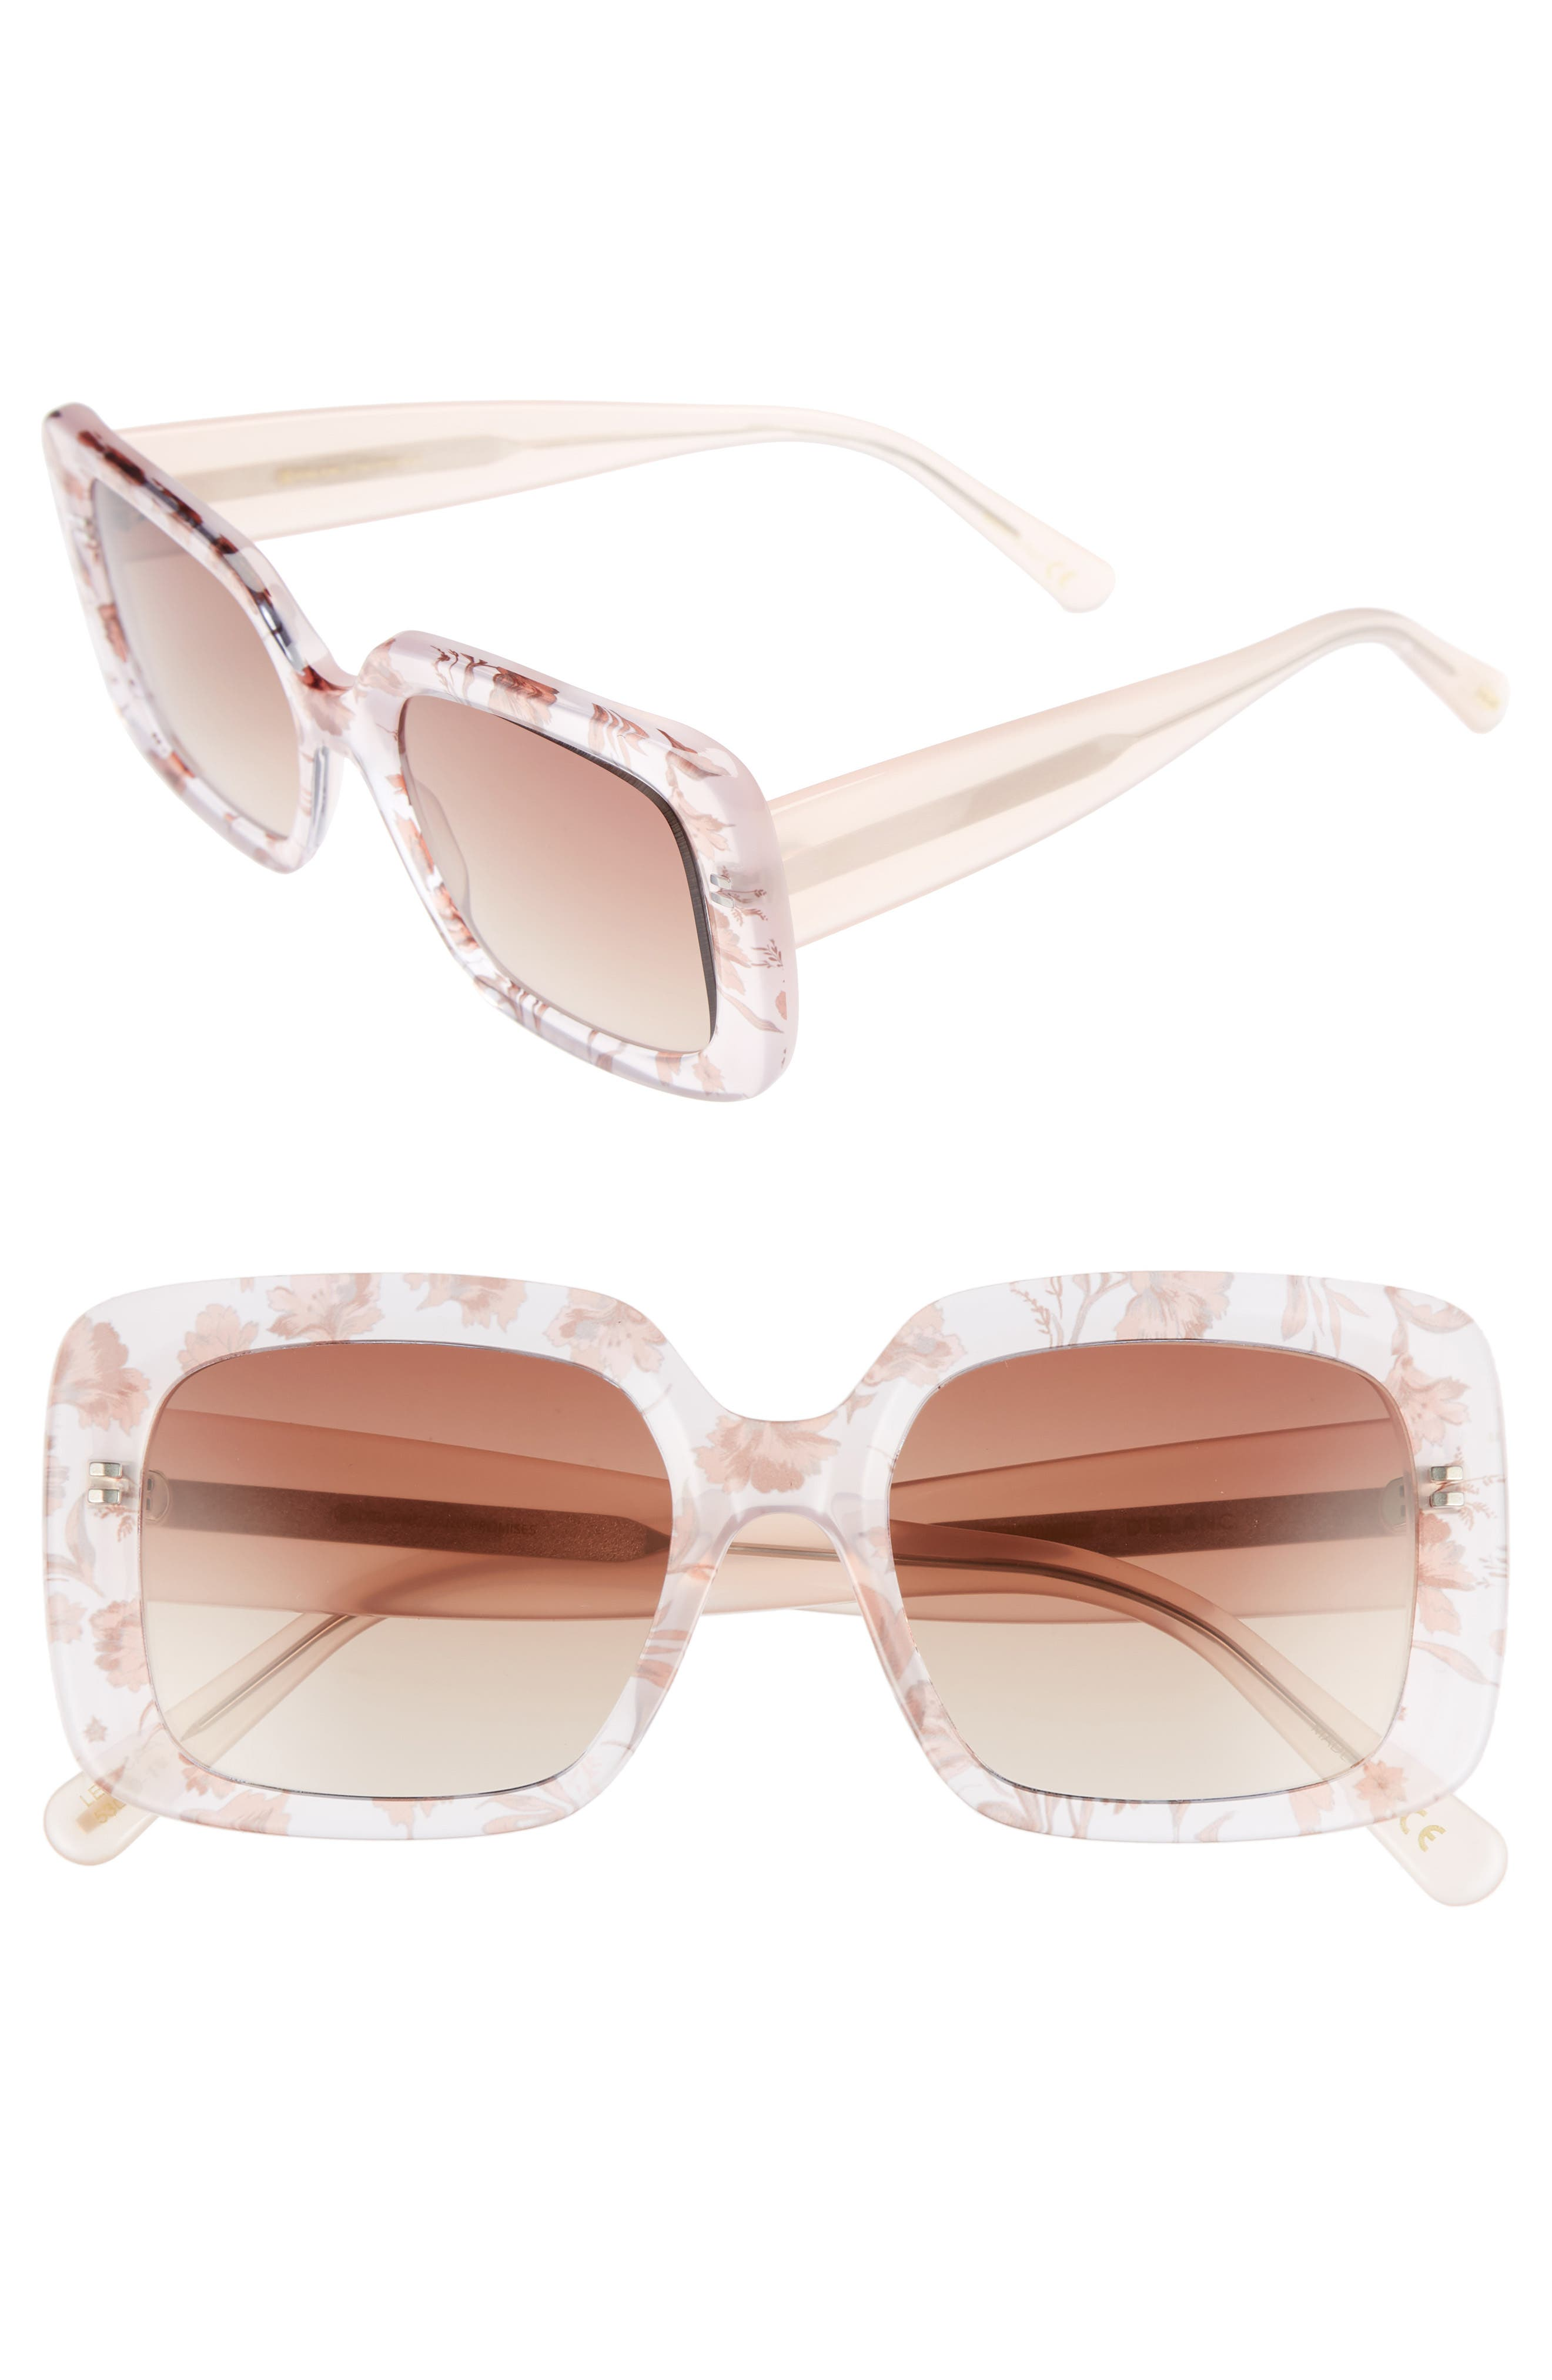 D'BLANC No Promises 53mm Sunglasses,                         Main,                         color, Something Nice